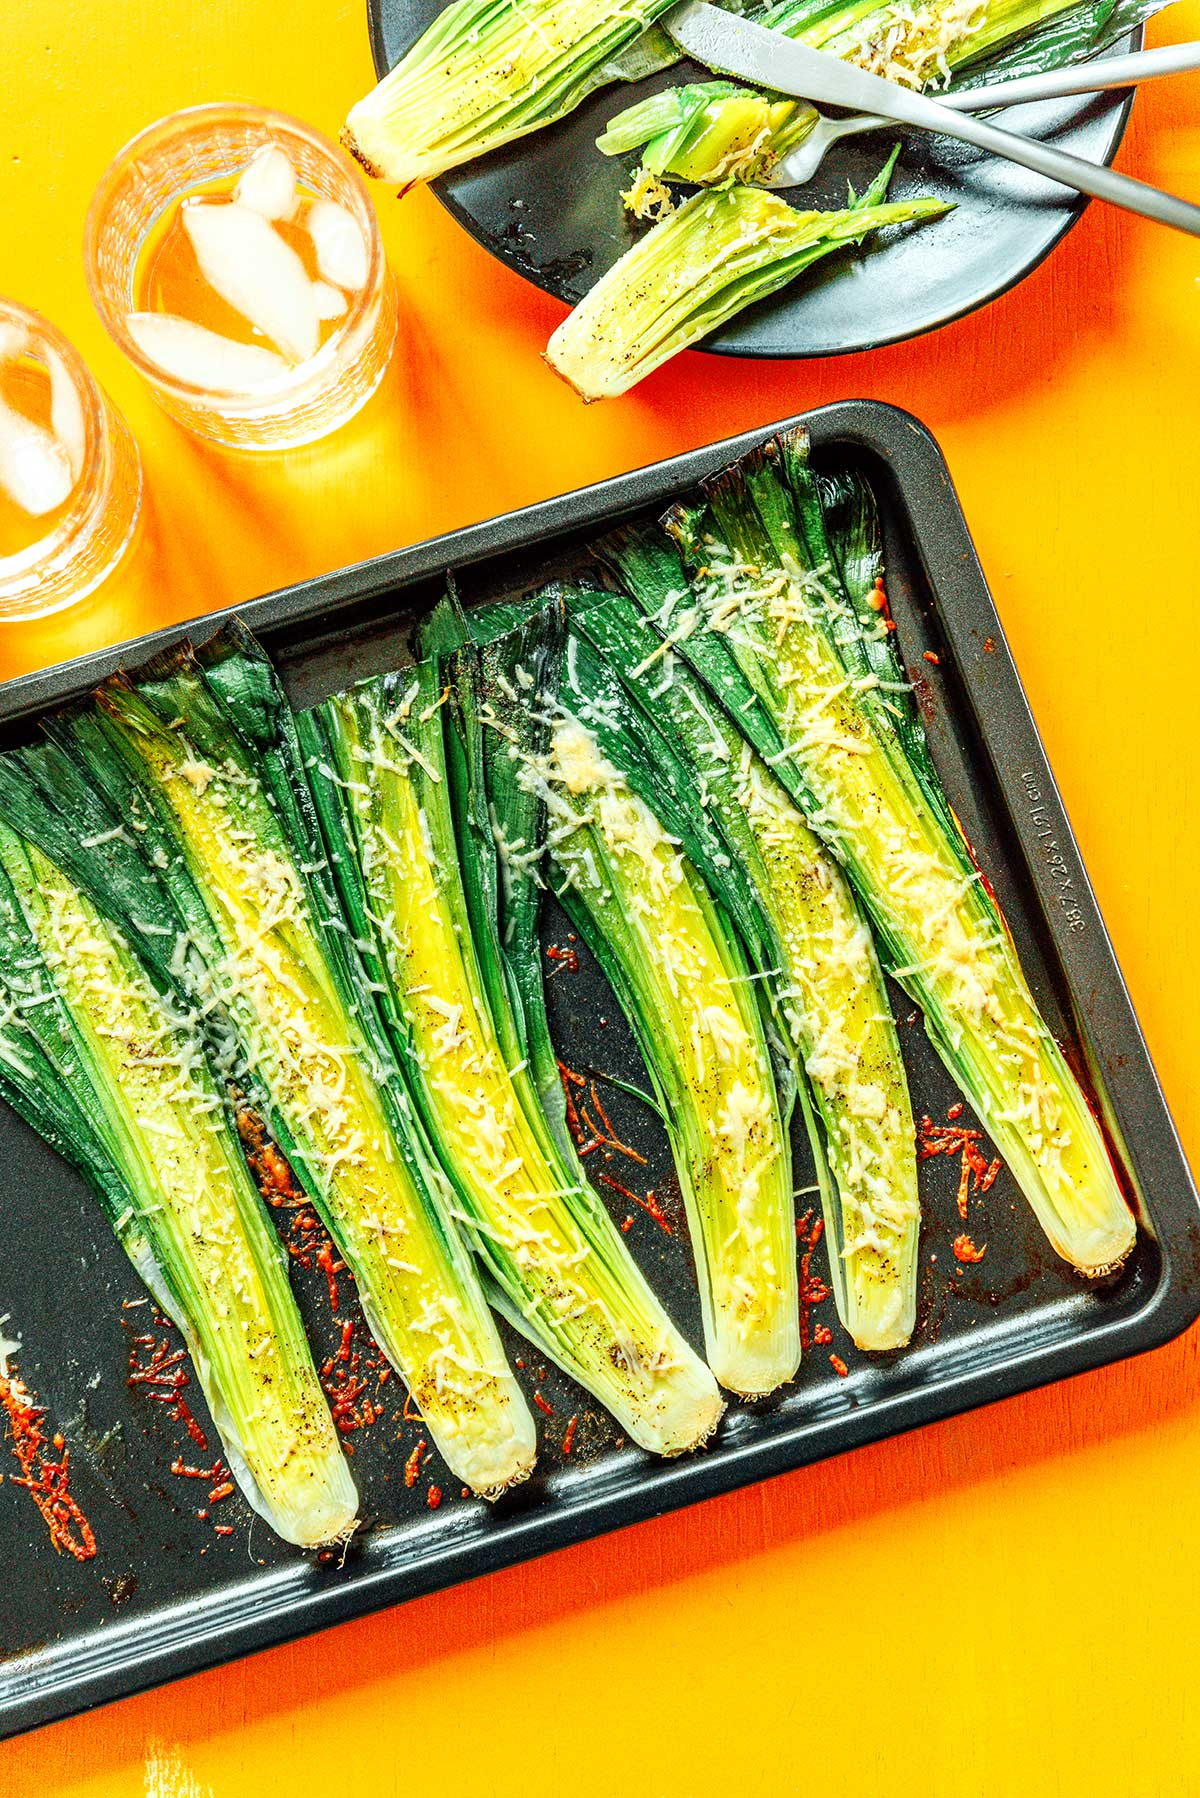 A tray of six leek halves fresh out of the oven with parmesan coated on top